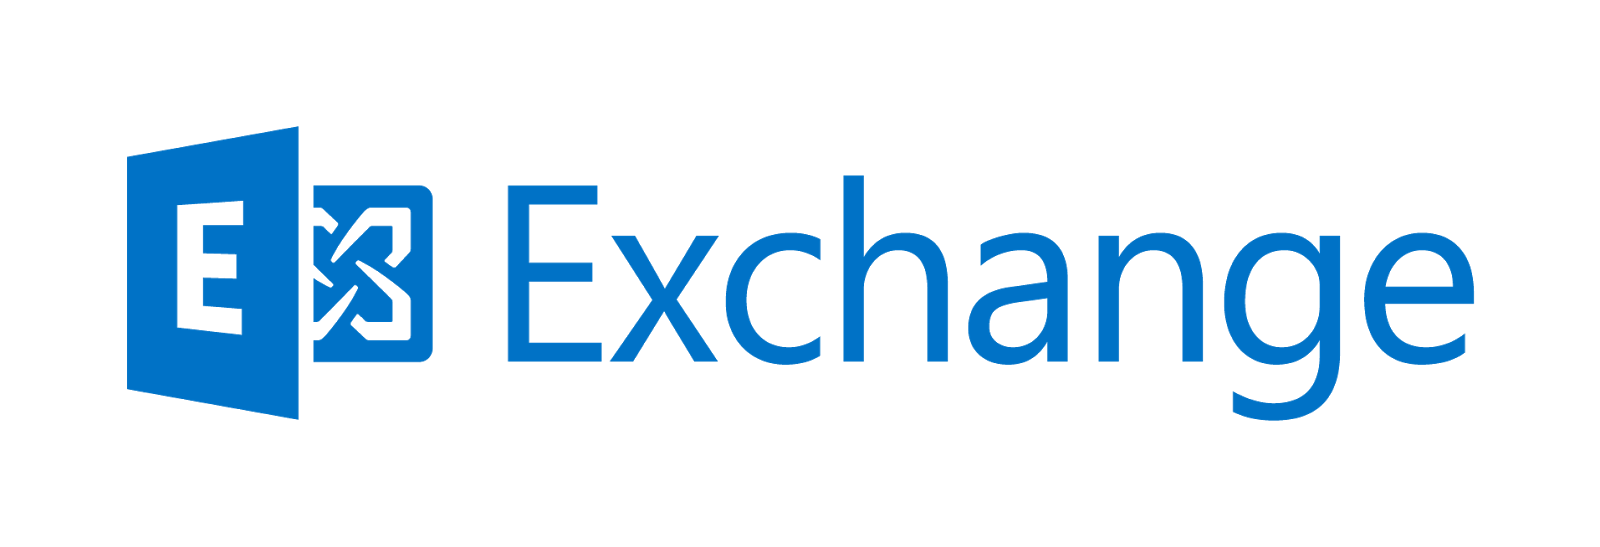 clear down exchange 2016 transaction logs